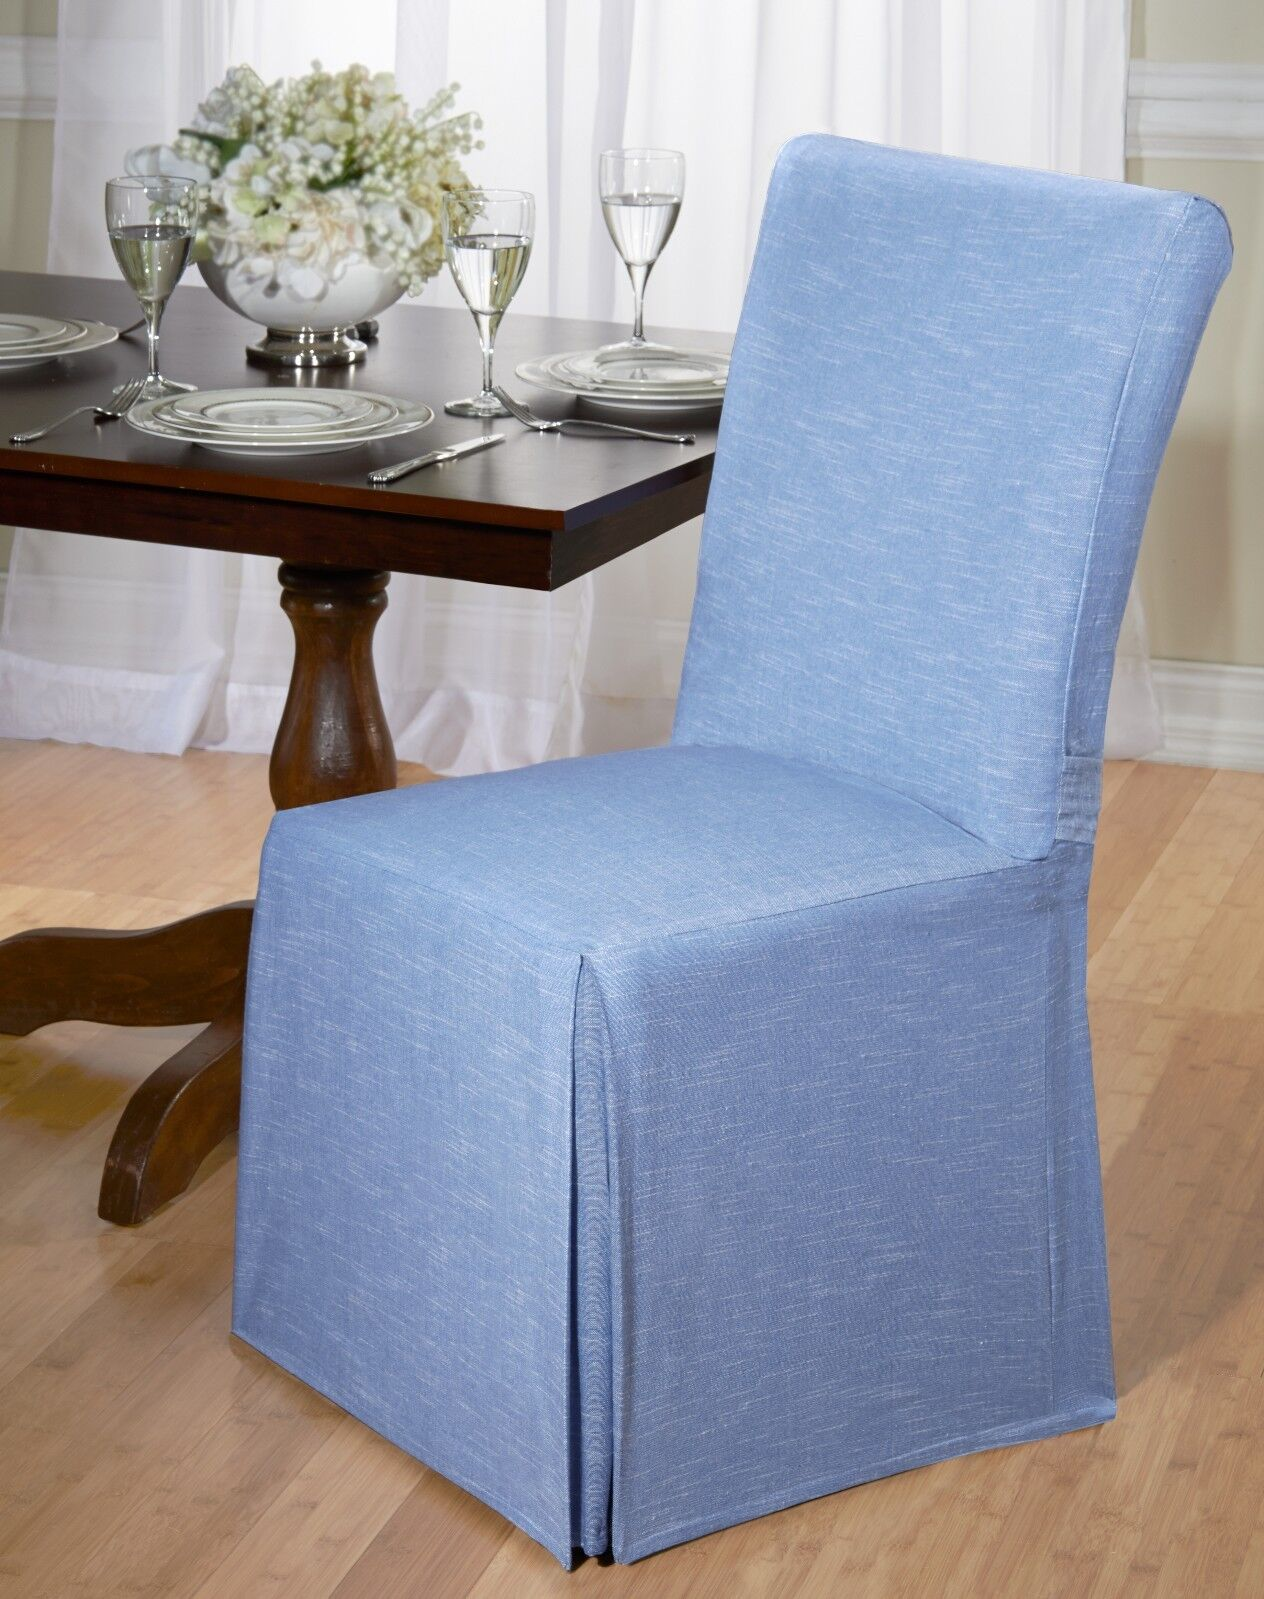 chair covers for dining chairs cheap spandex sale luxurious cotton cover chambray back tie